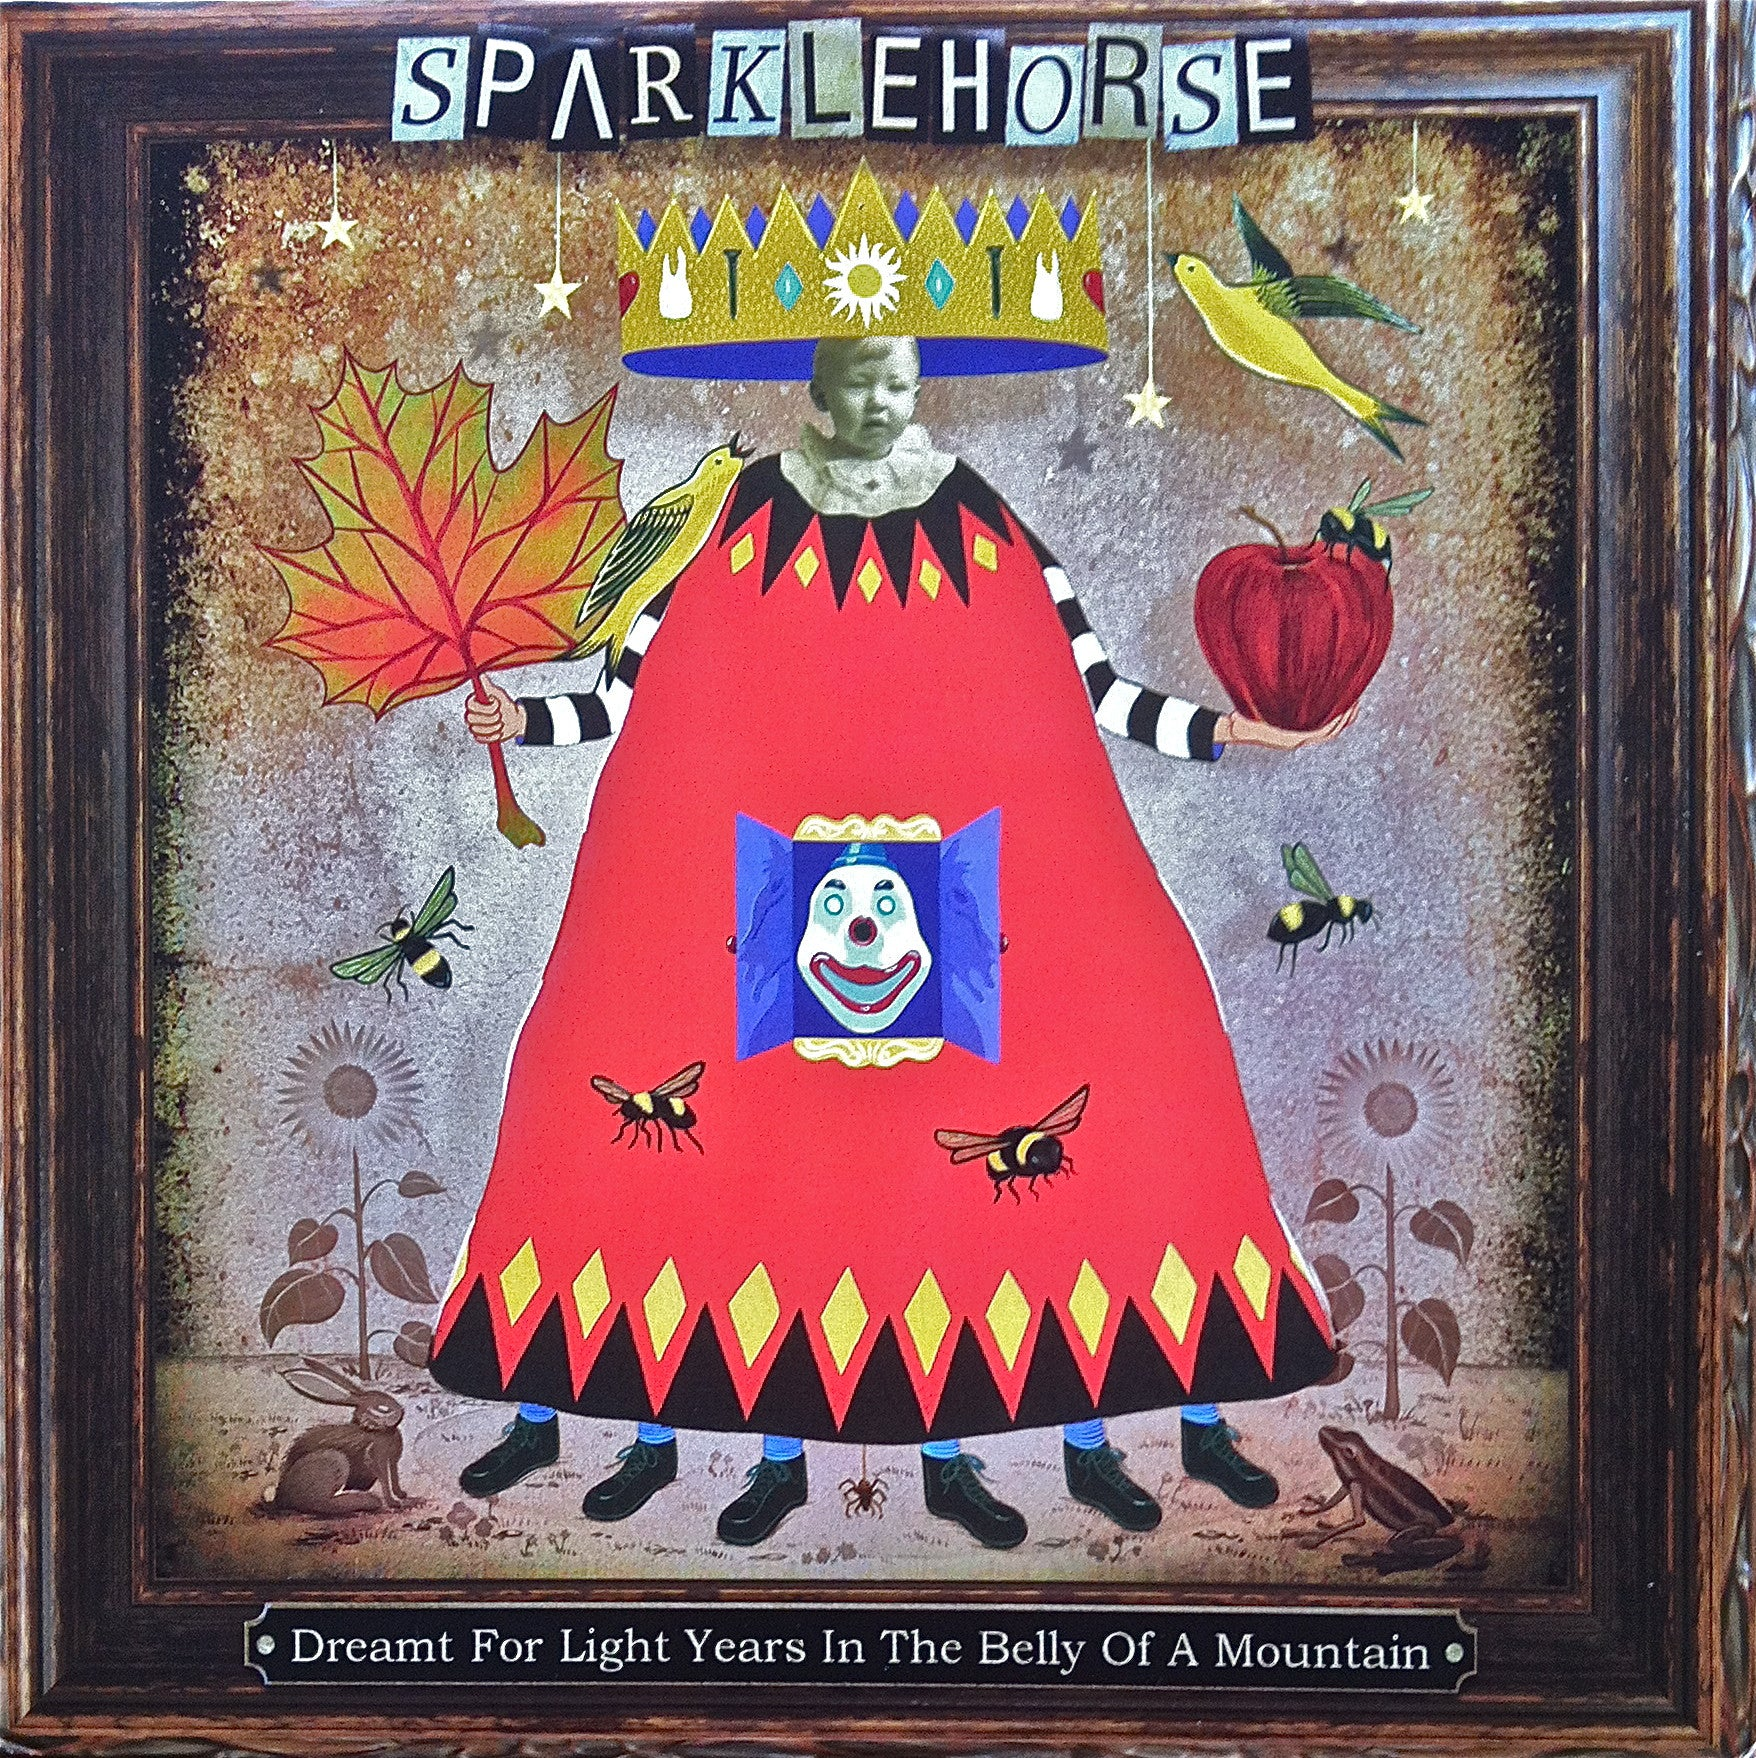 SPARKLEHORSE-DREAMT FOR LIGHT YEARS IN THE BELLY OF A CD VGPLUS